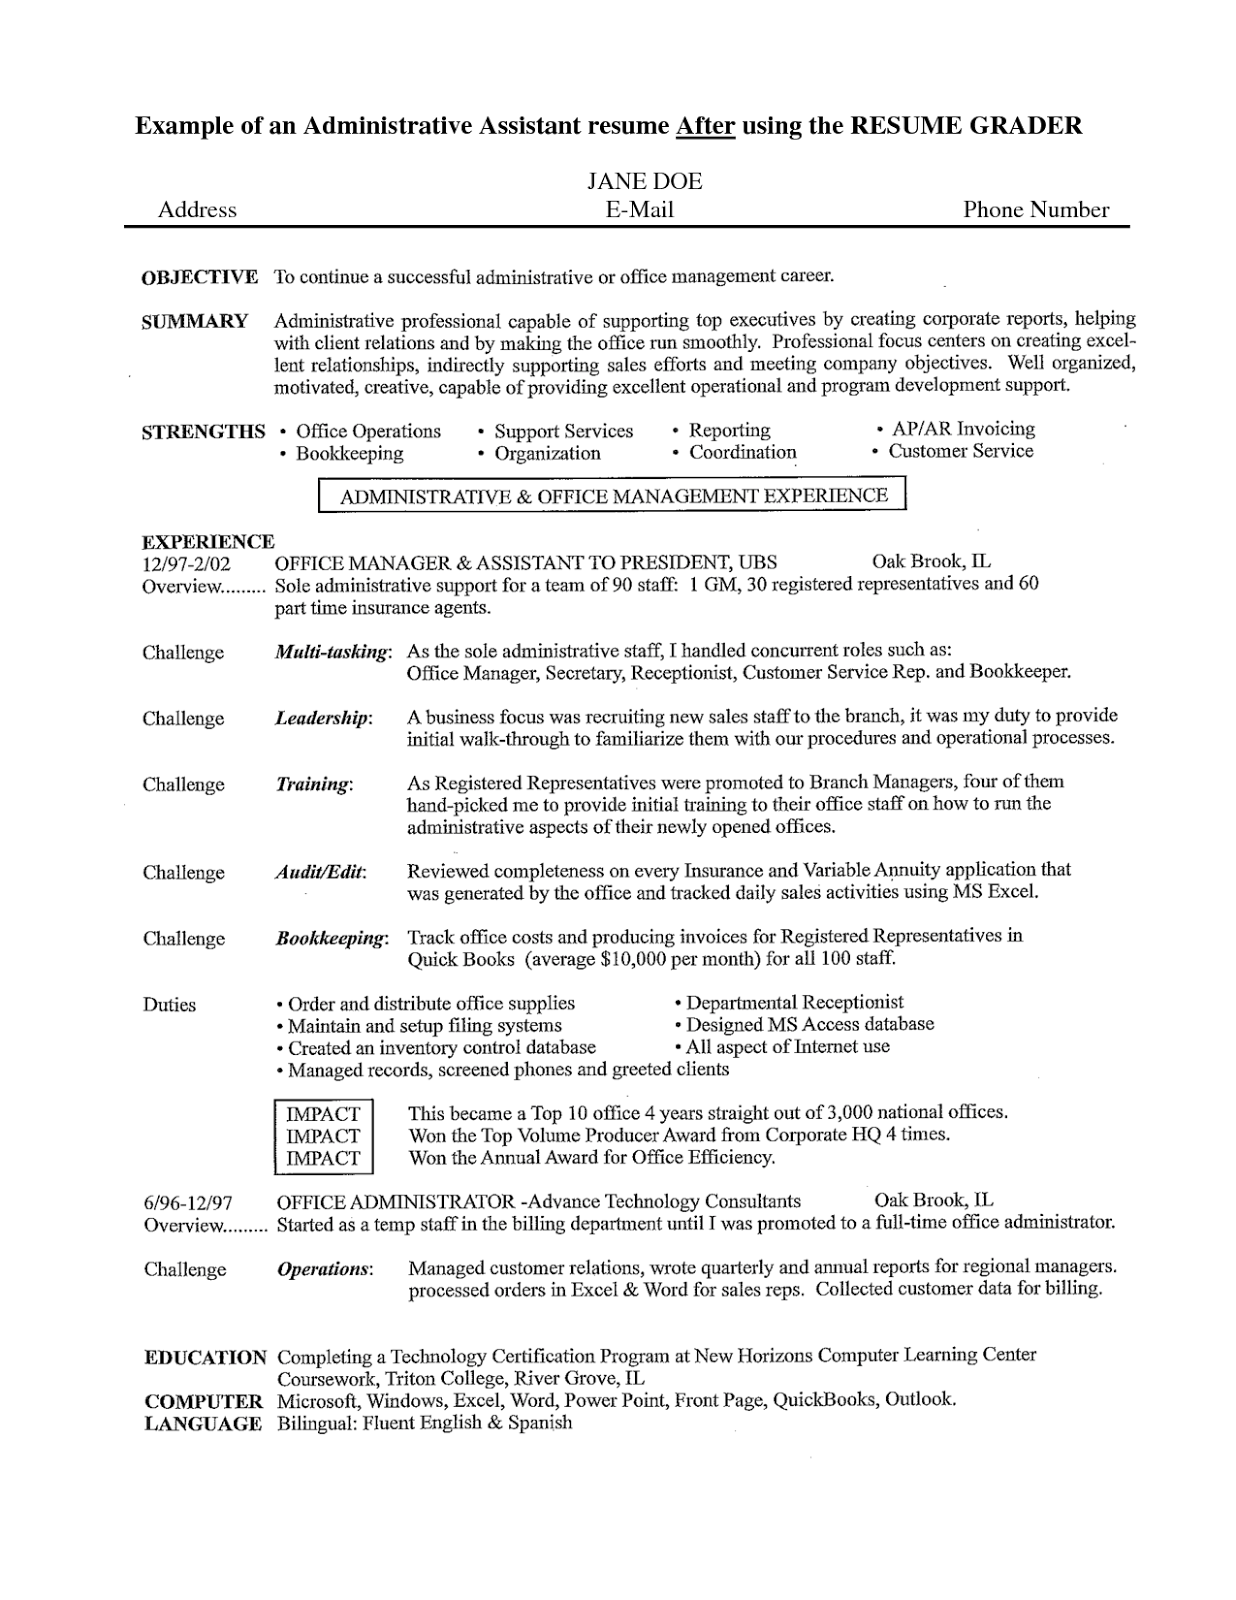 Doc Good Things To Put On A Resume For Skills Skills To Domainlives Good  Resume Objectives  Professional Objective Resume